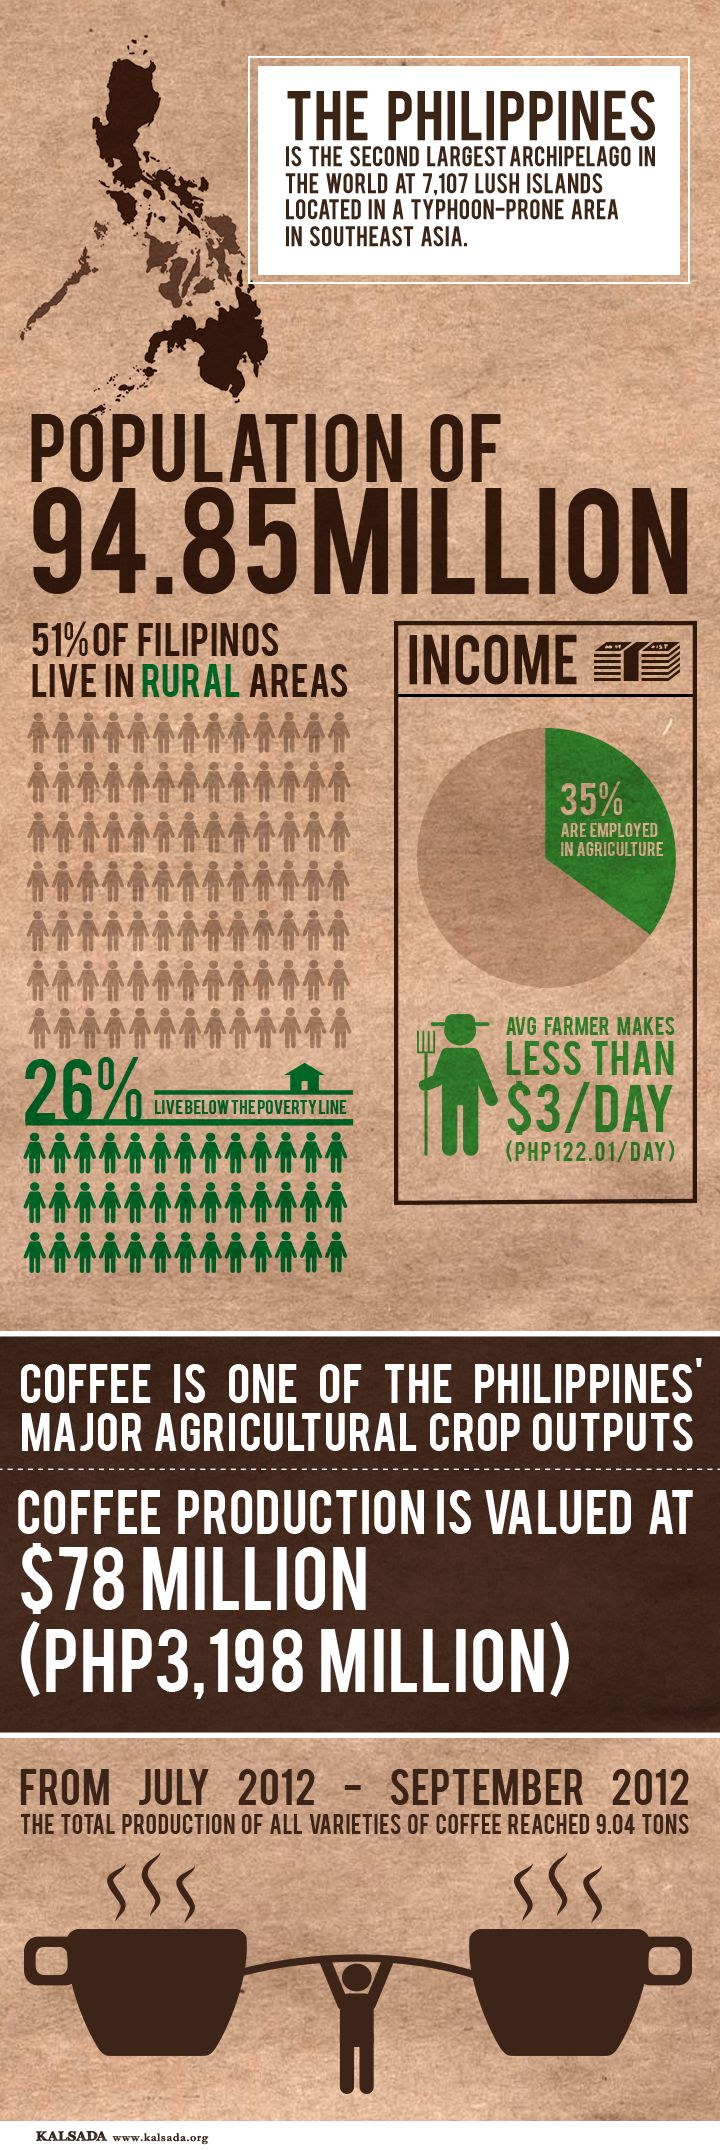 Interesting facts about the Philippines to expand my students minds. Just to help them think about different parts of the world.